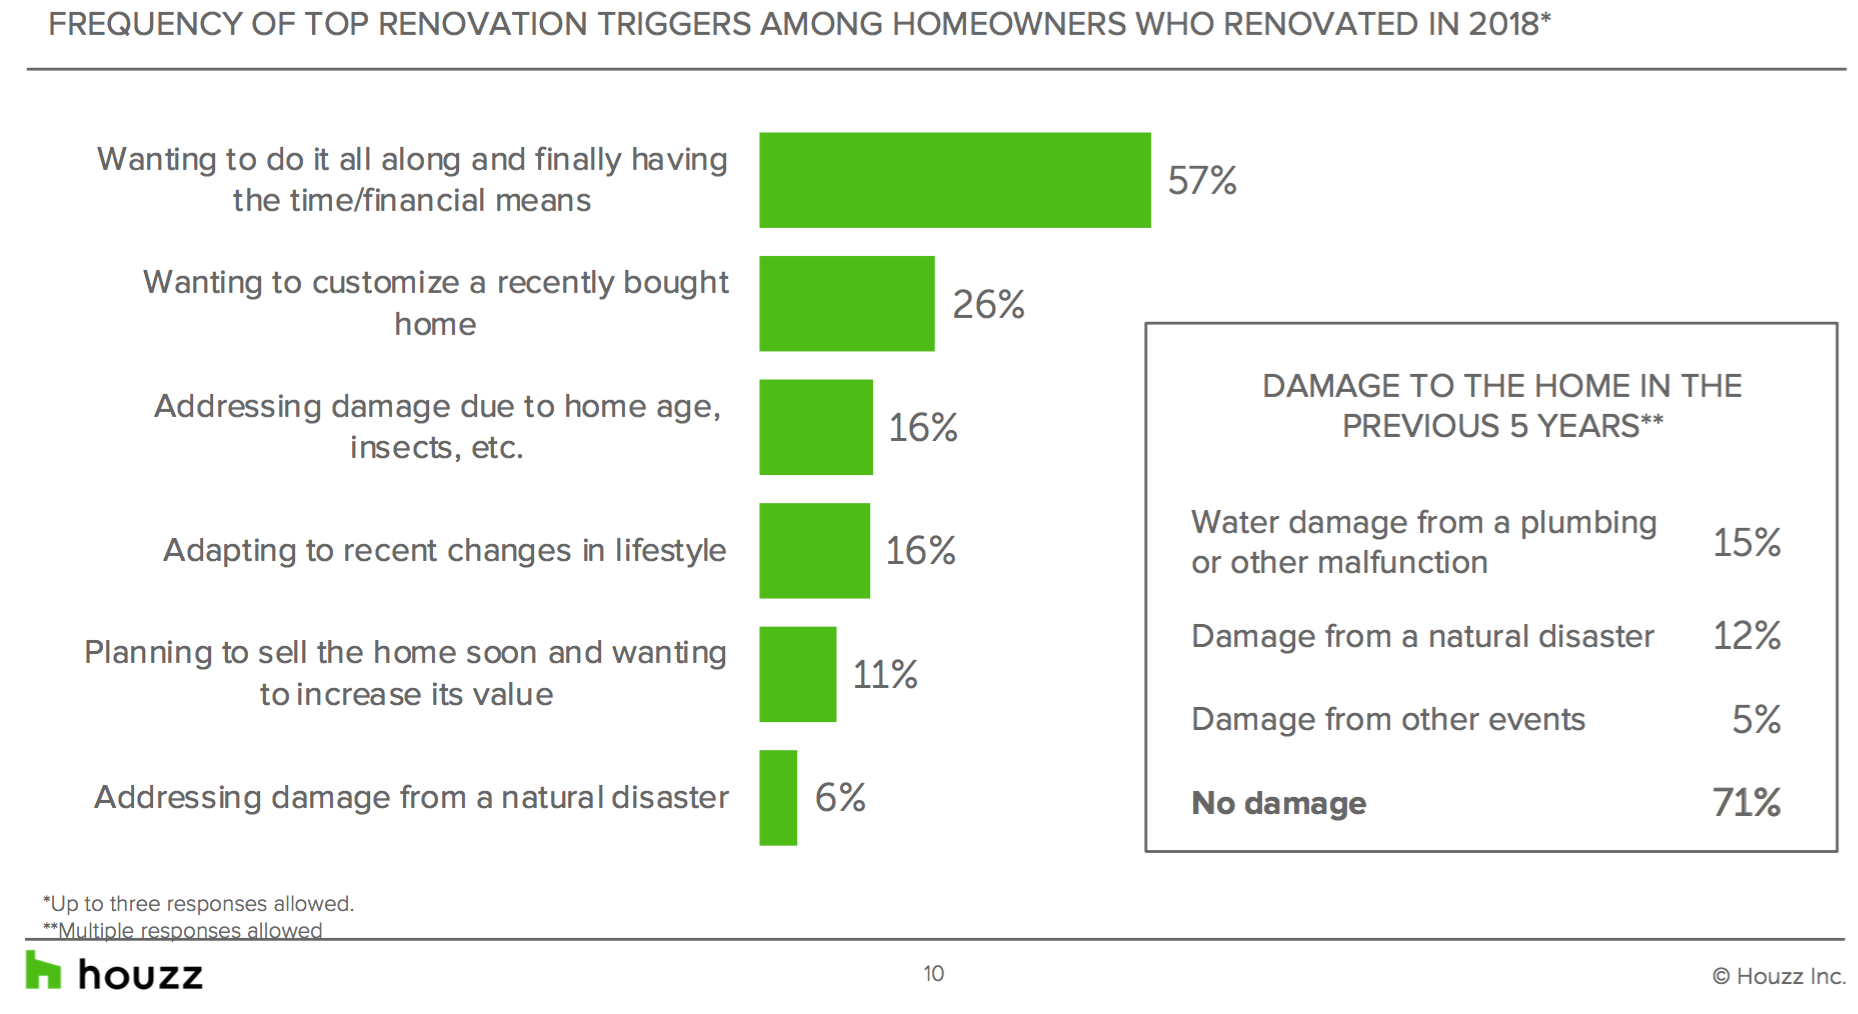 Houzz renovation triggers chart. Visit source link at the end of this article for more information.